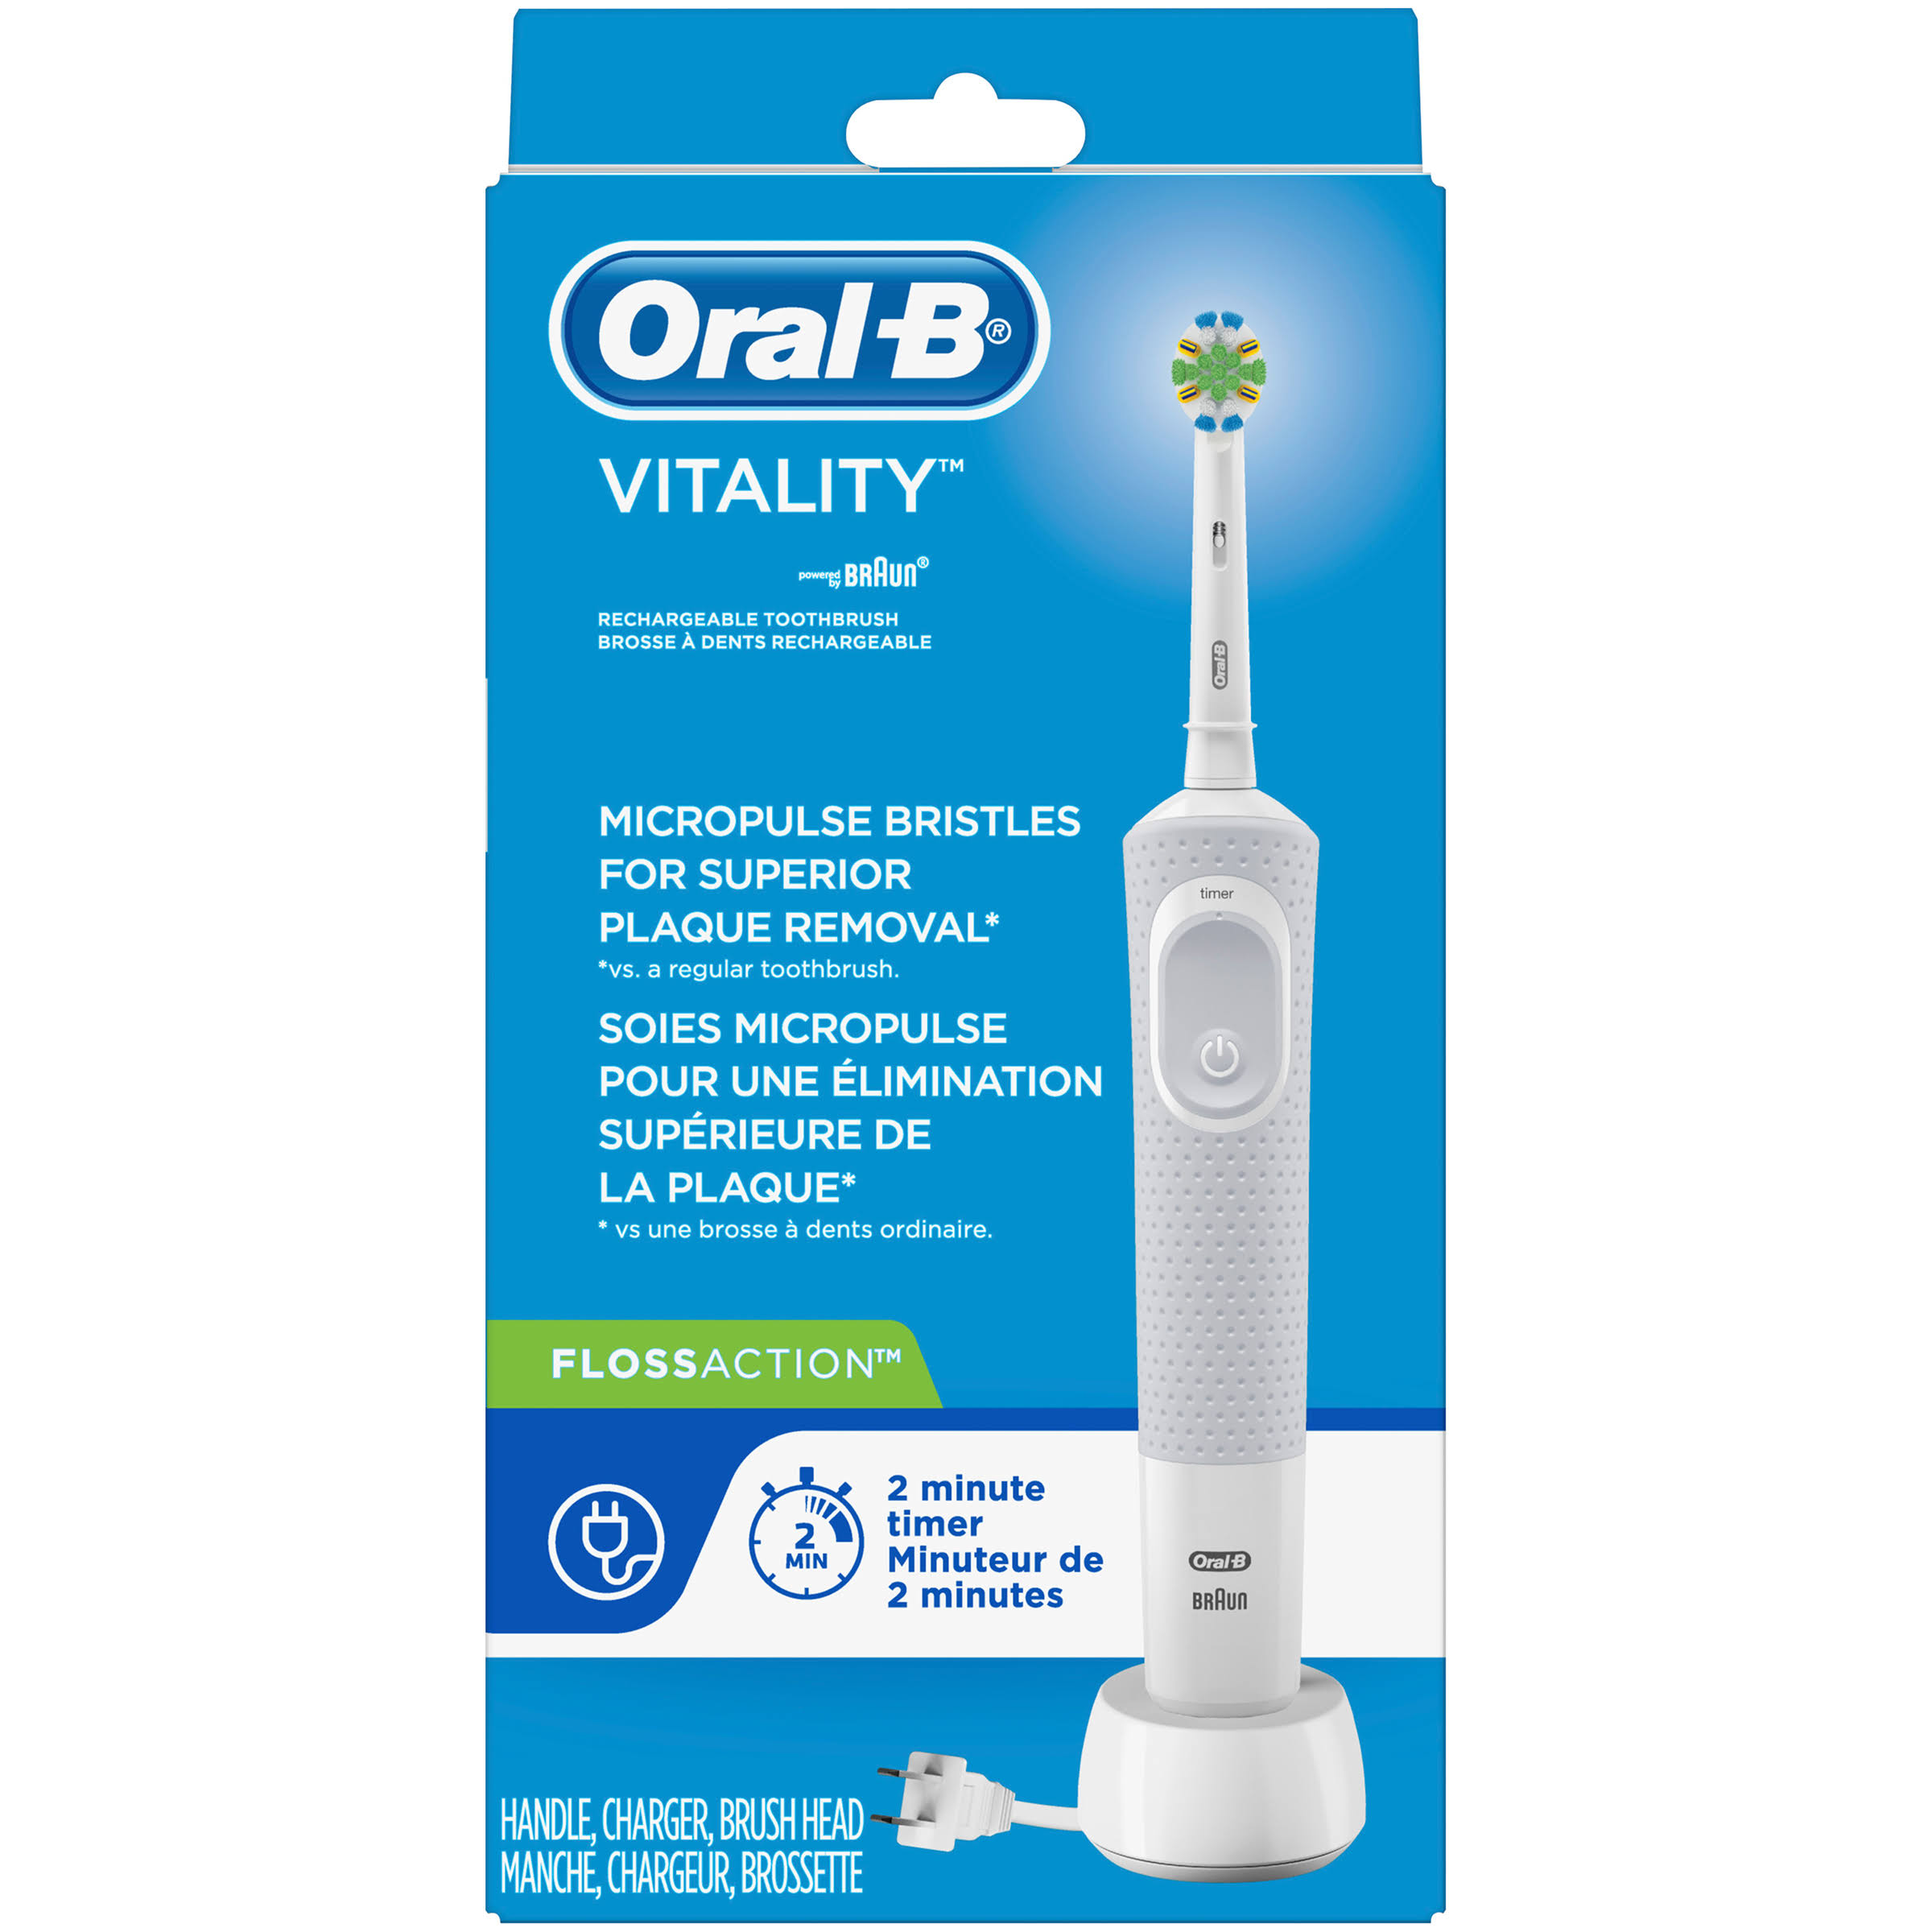 Oral-B Vitality Flossaction Rechargeable Electric Toothbrush